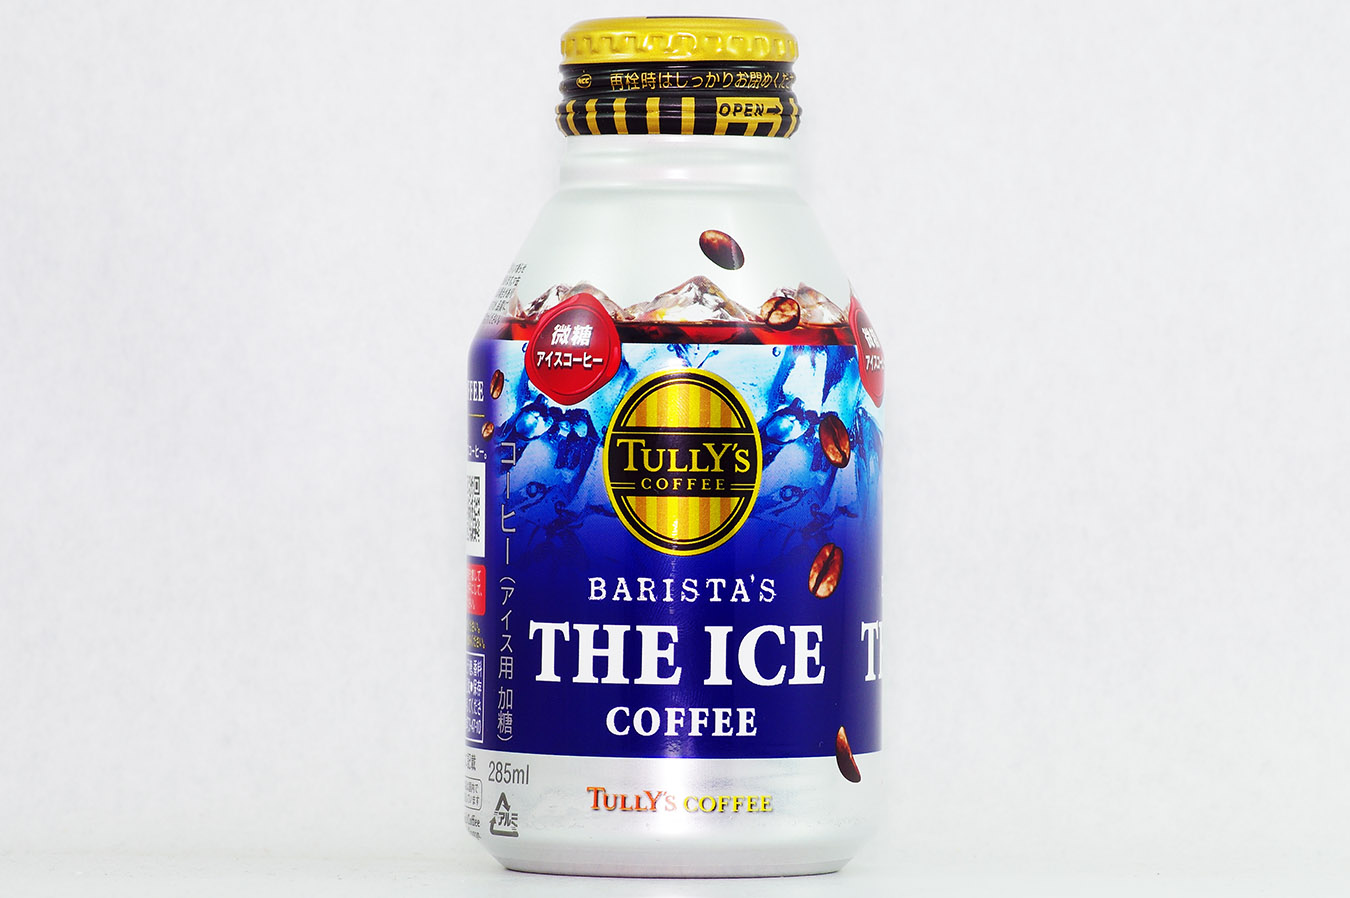 TULLY'S COFFEE BARISTA'S THE ICE COFFEE 2016年3月